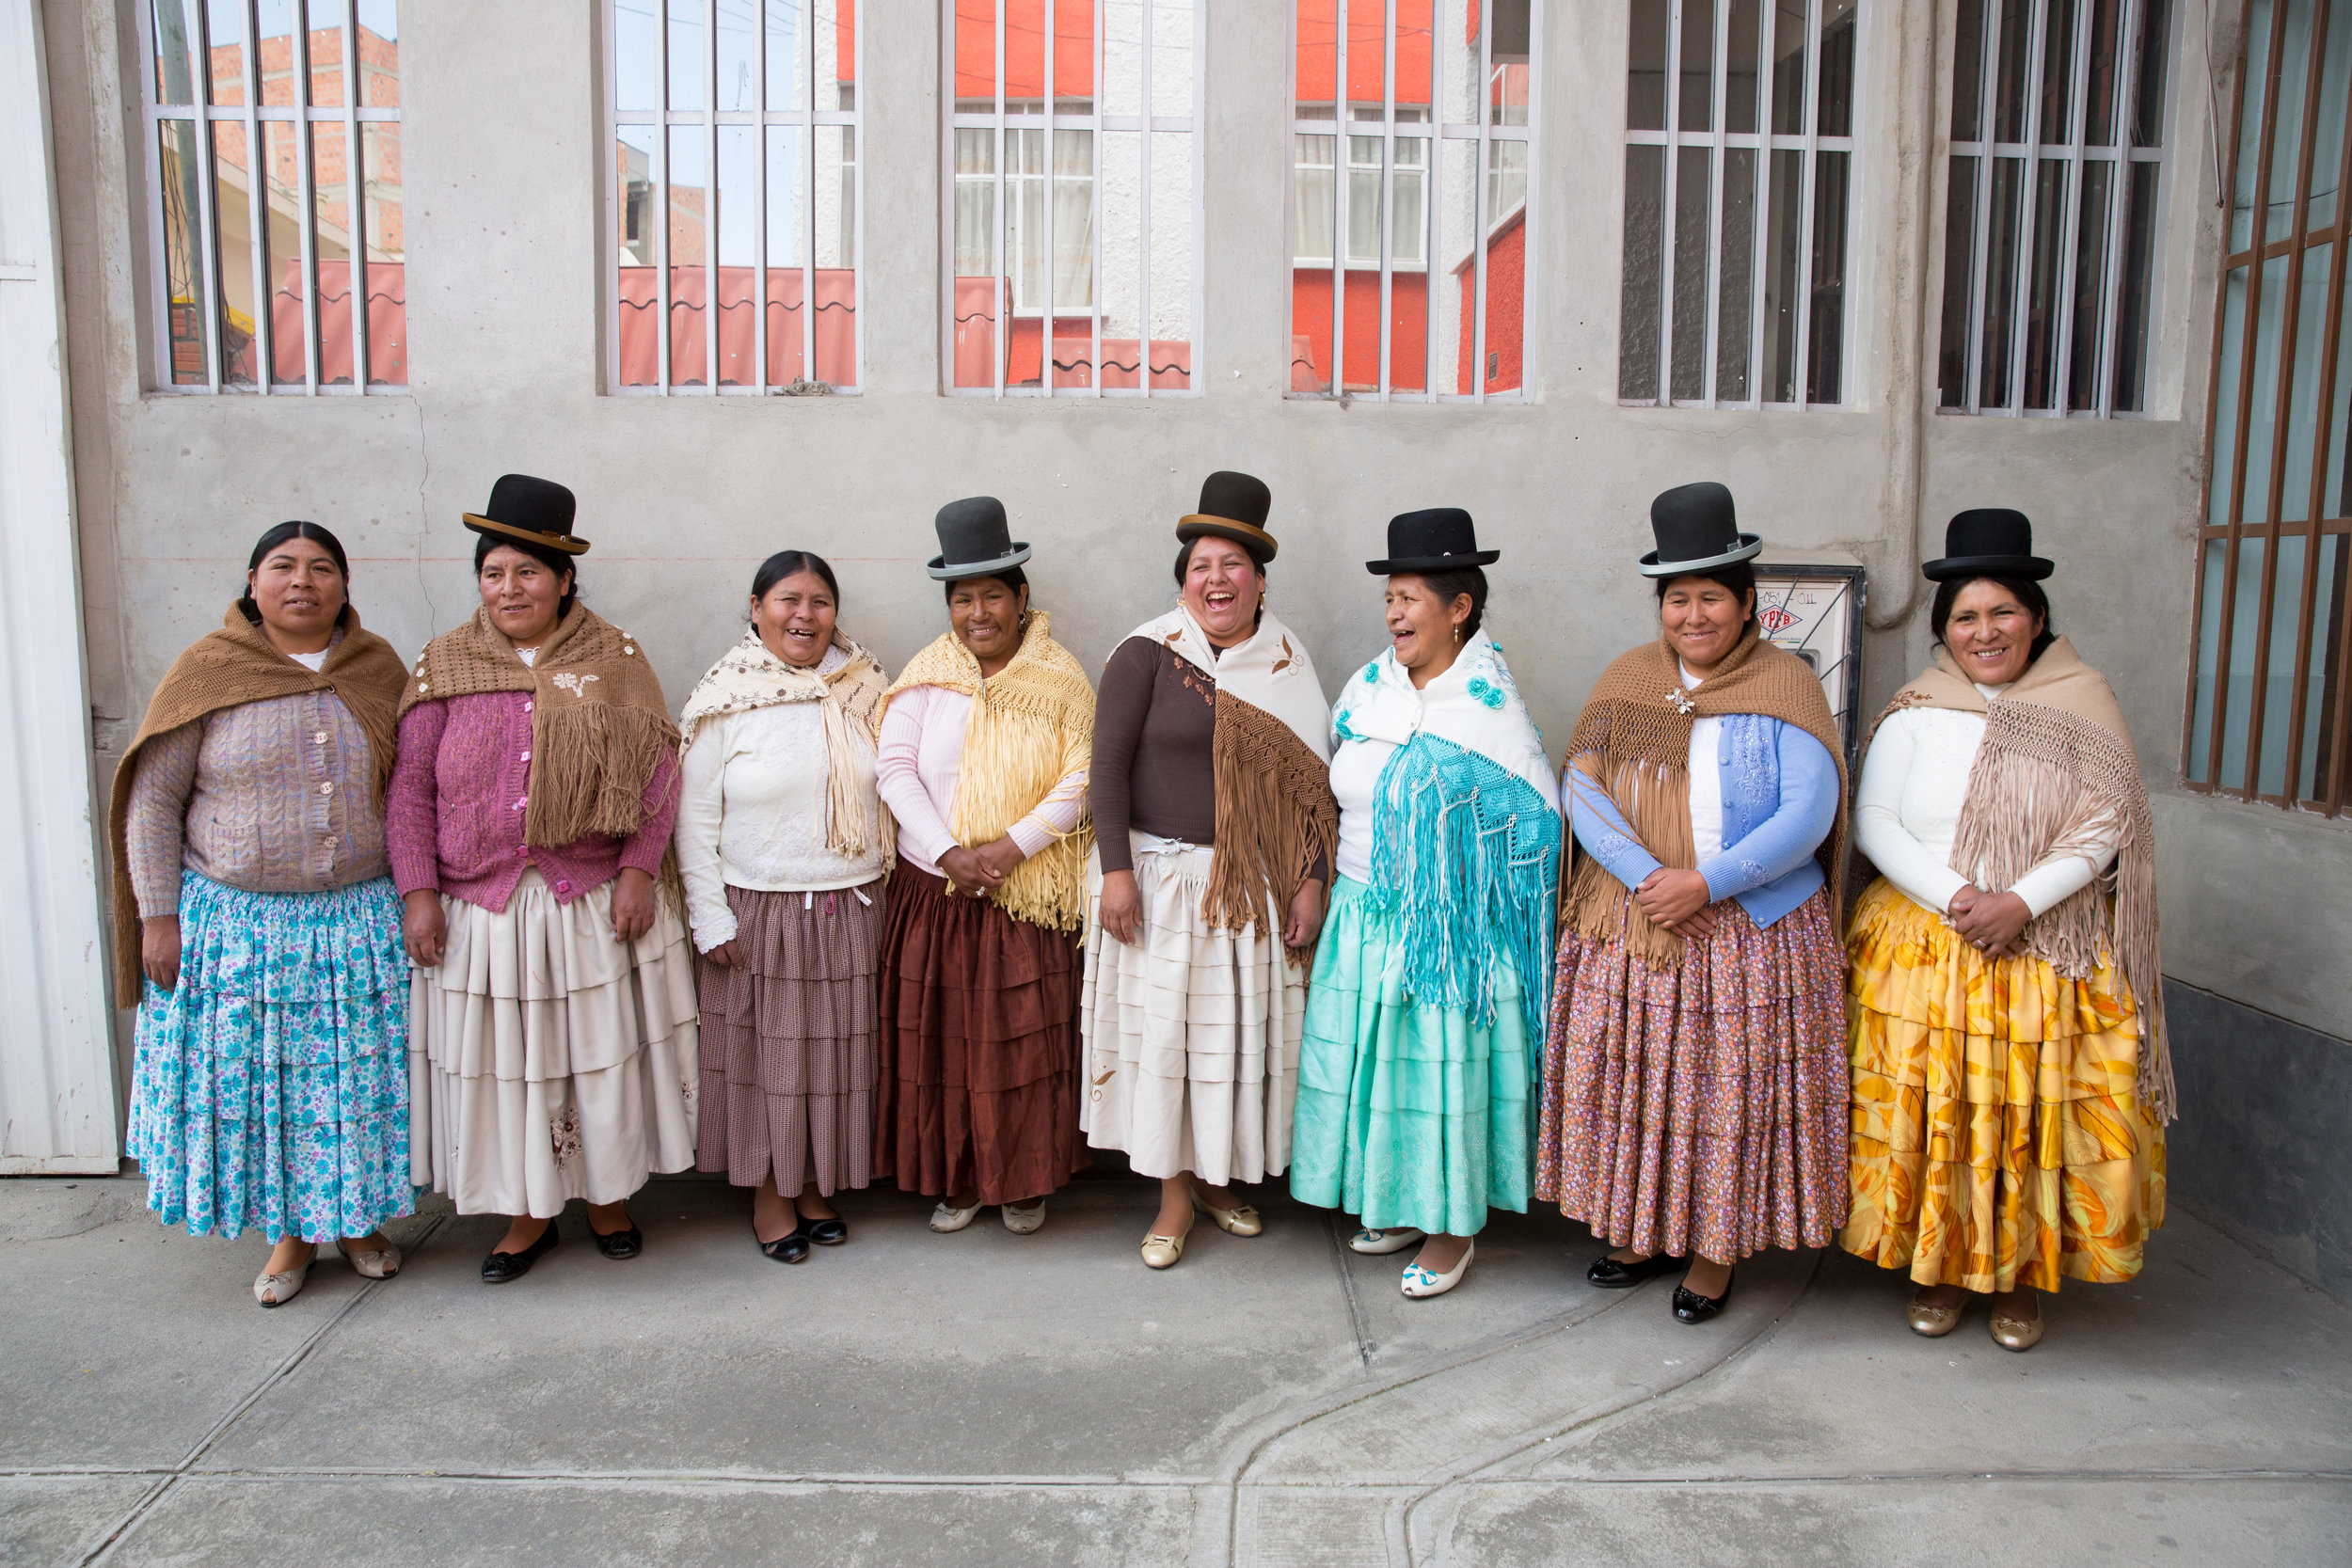 In La Paz, Bolivia visiting the women's cooperative we work with. These traditionally dressed artisan women are known as Cholita's and are a symbol of cultural identity. They wear their dress with pride daily as it celebrates their femininity, elegance and pride. Its incredible that they work in their bowler hats all day long!